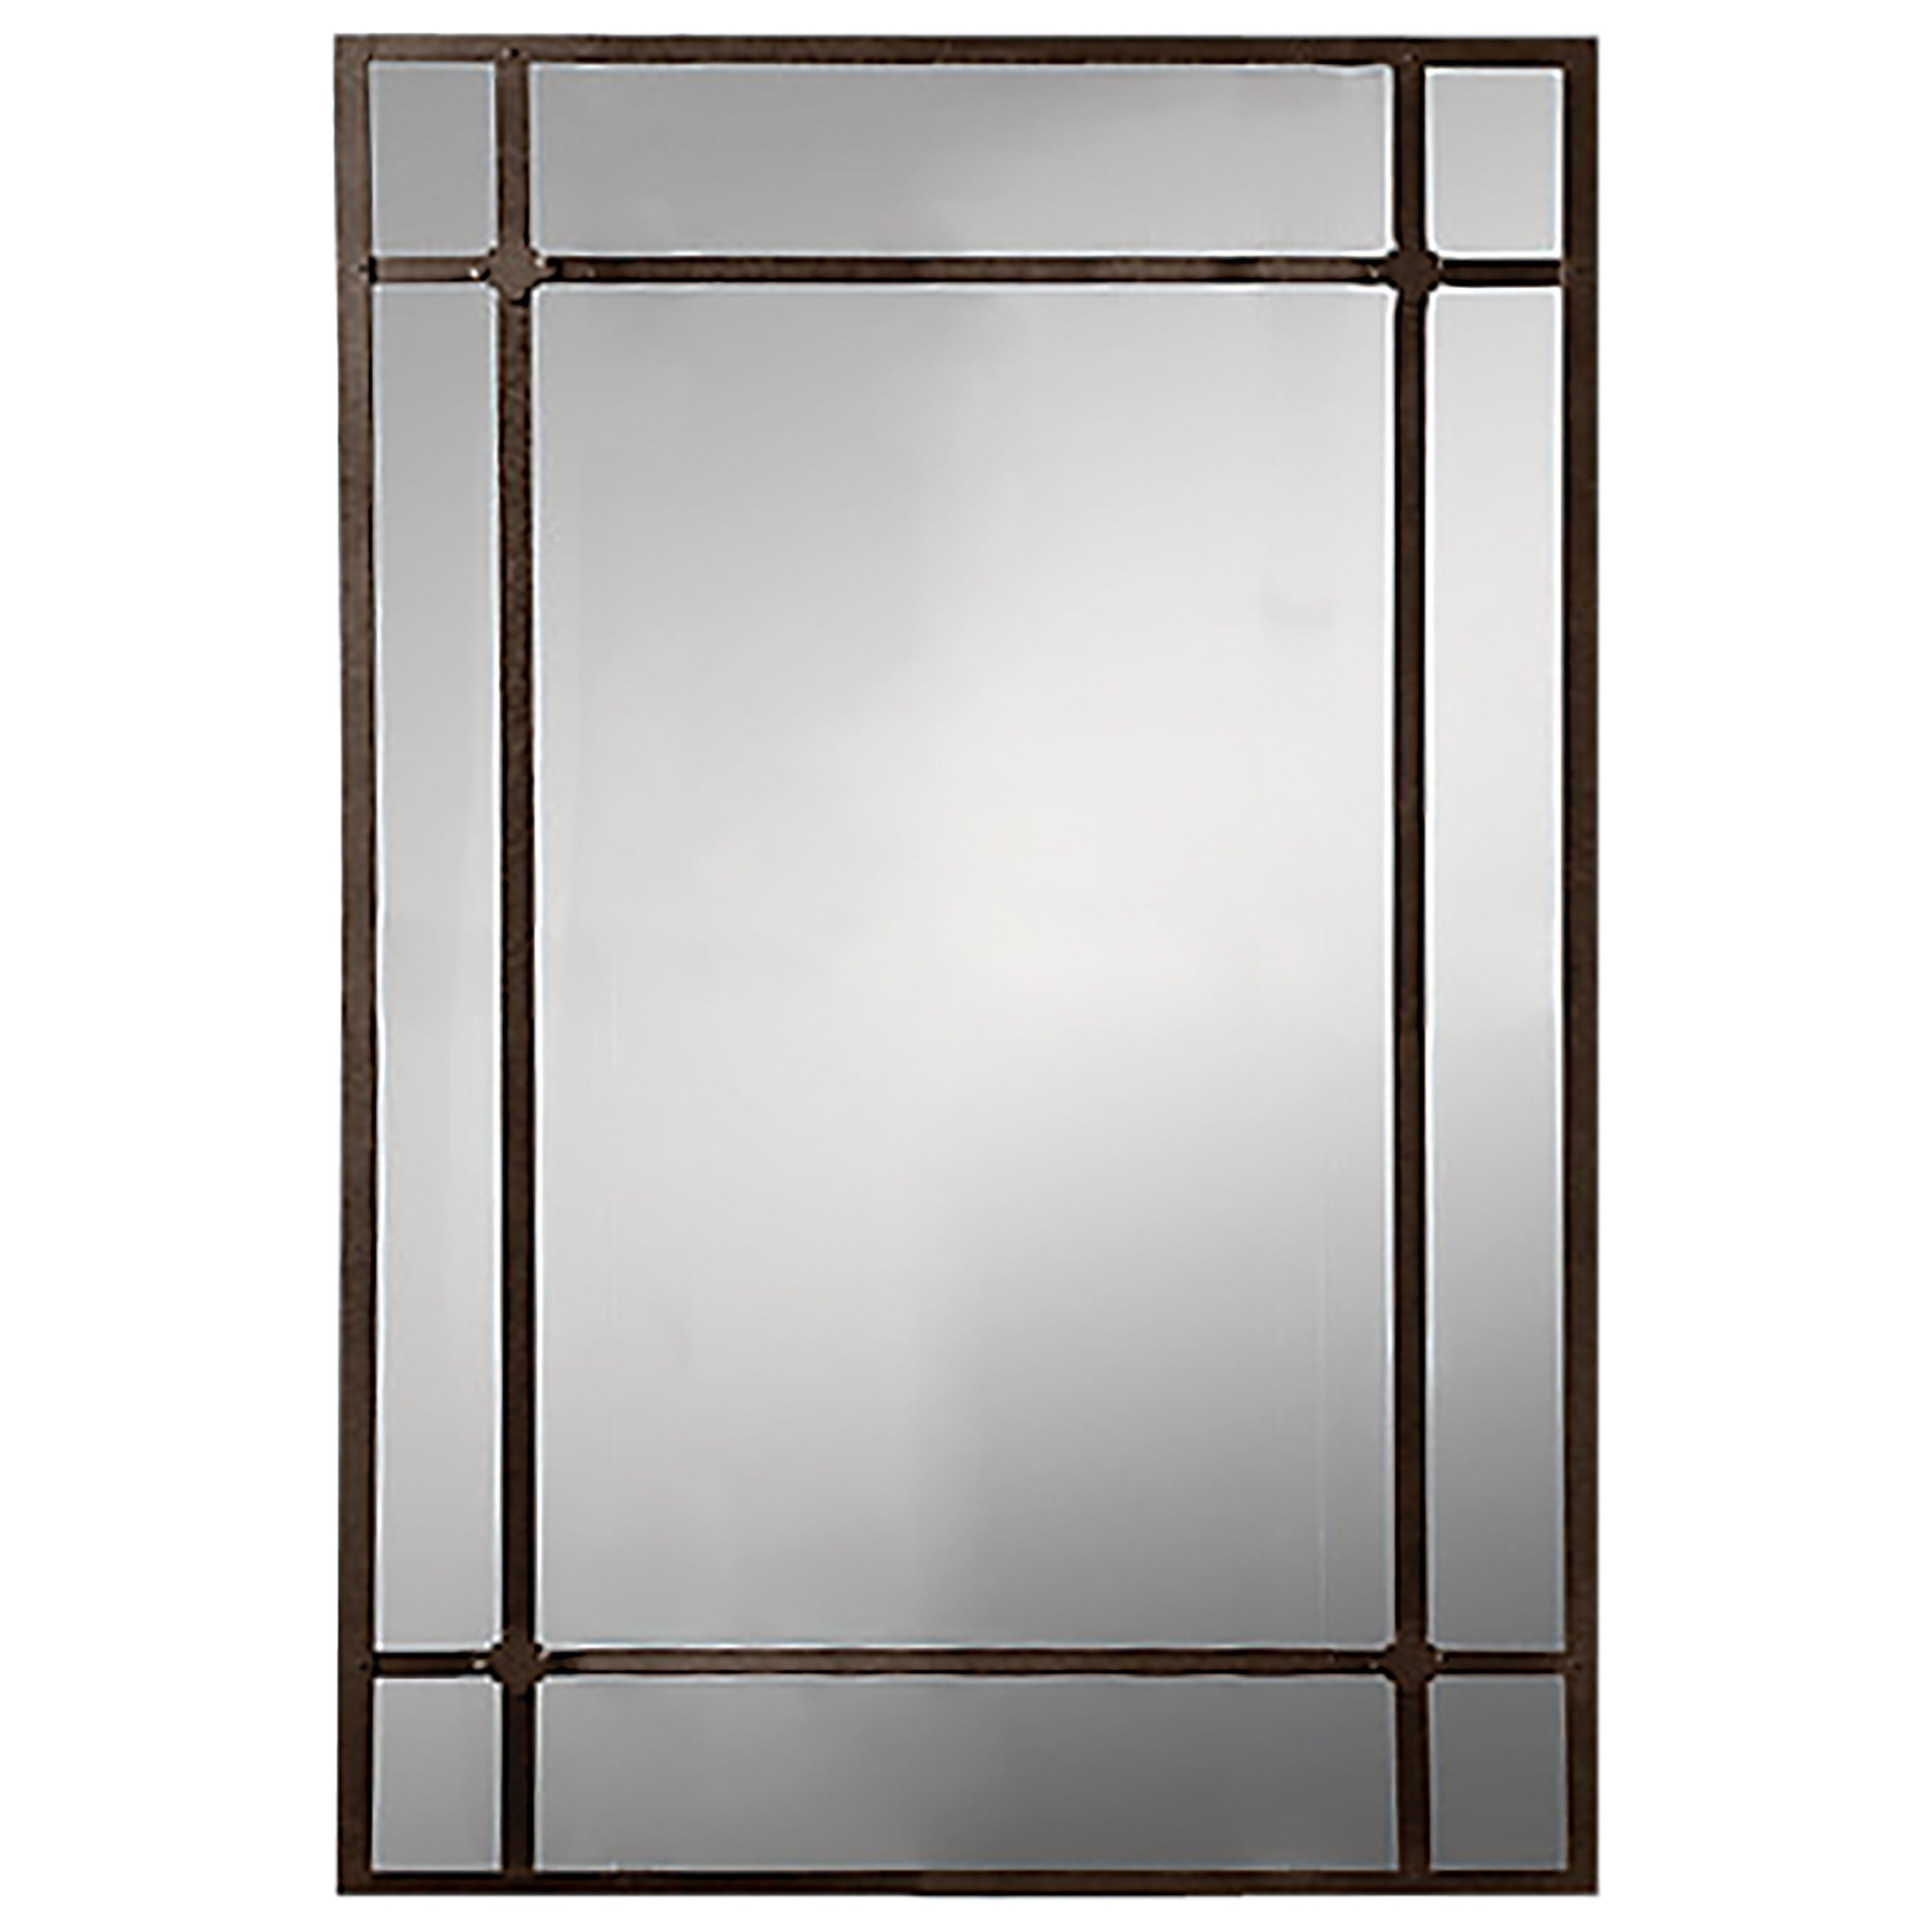 Decor-Rest Accent on Home Mirrors Bologna Wall Mirror - Item Number: 014-1424MRR